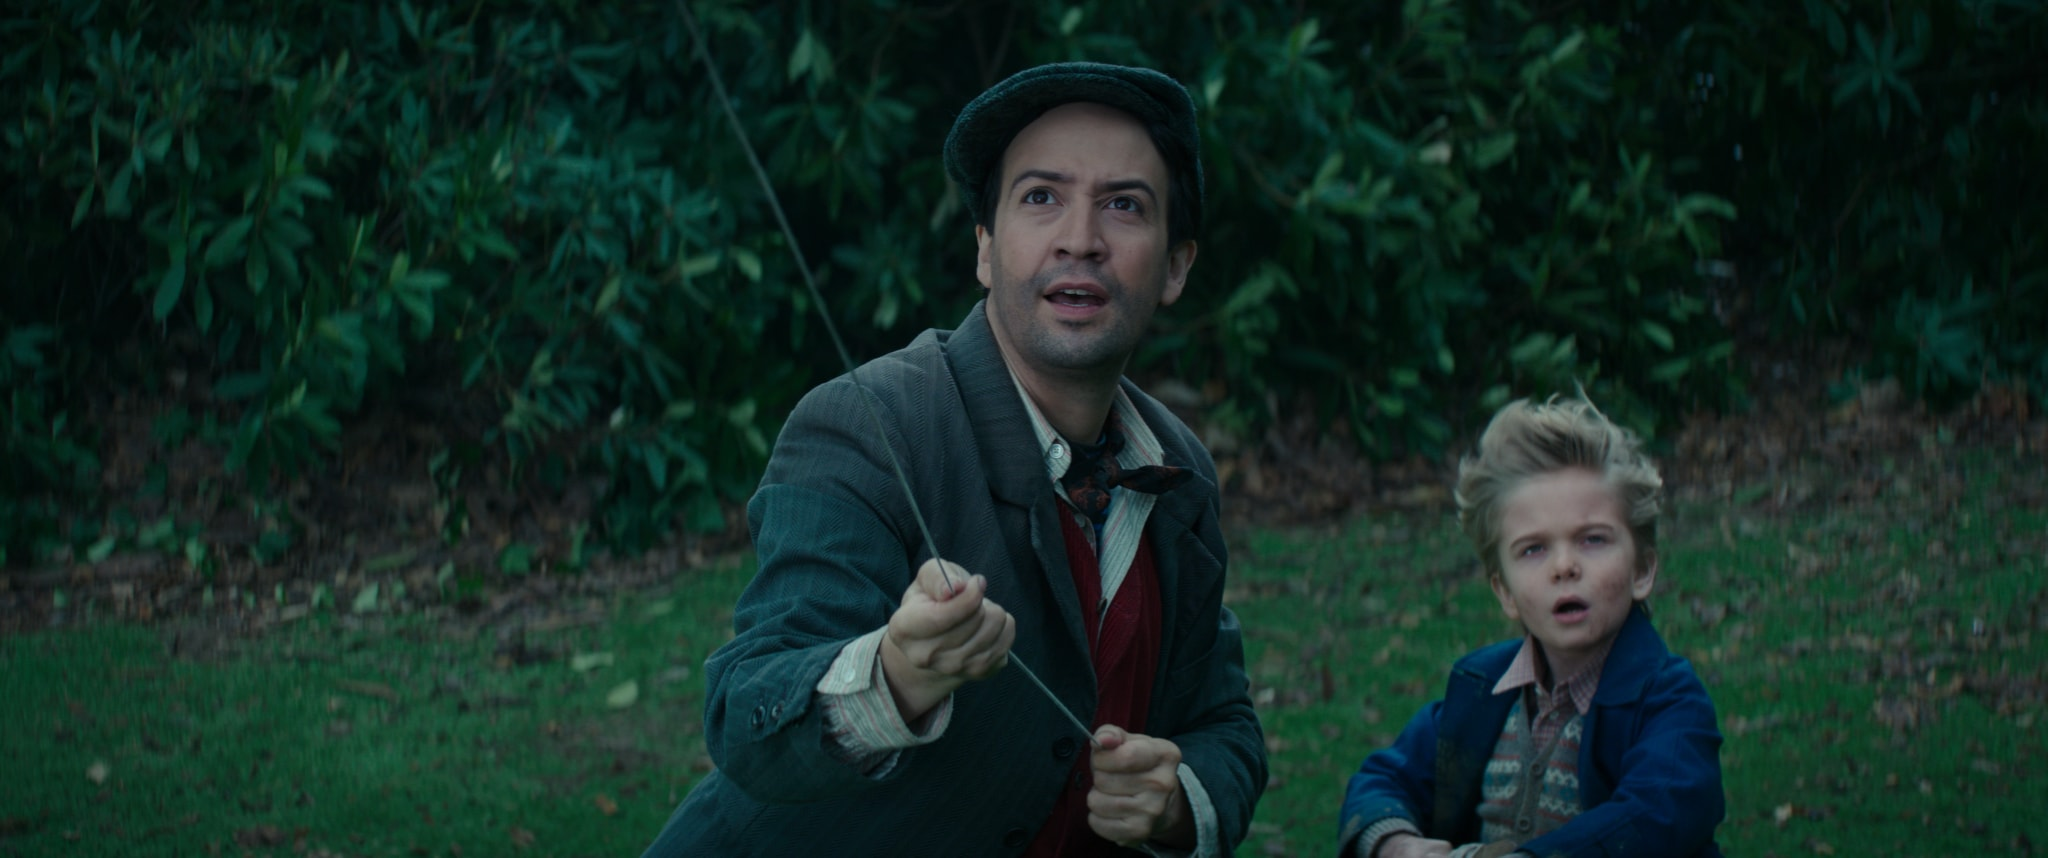 Jack in Mary Poppins